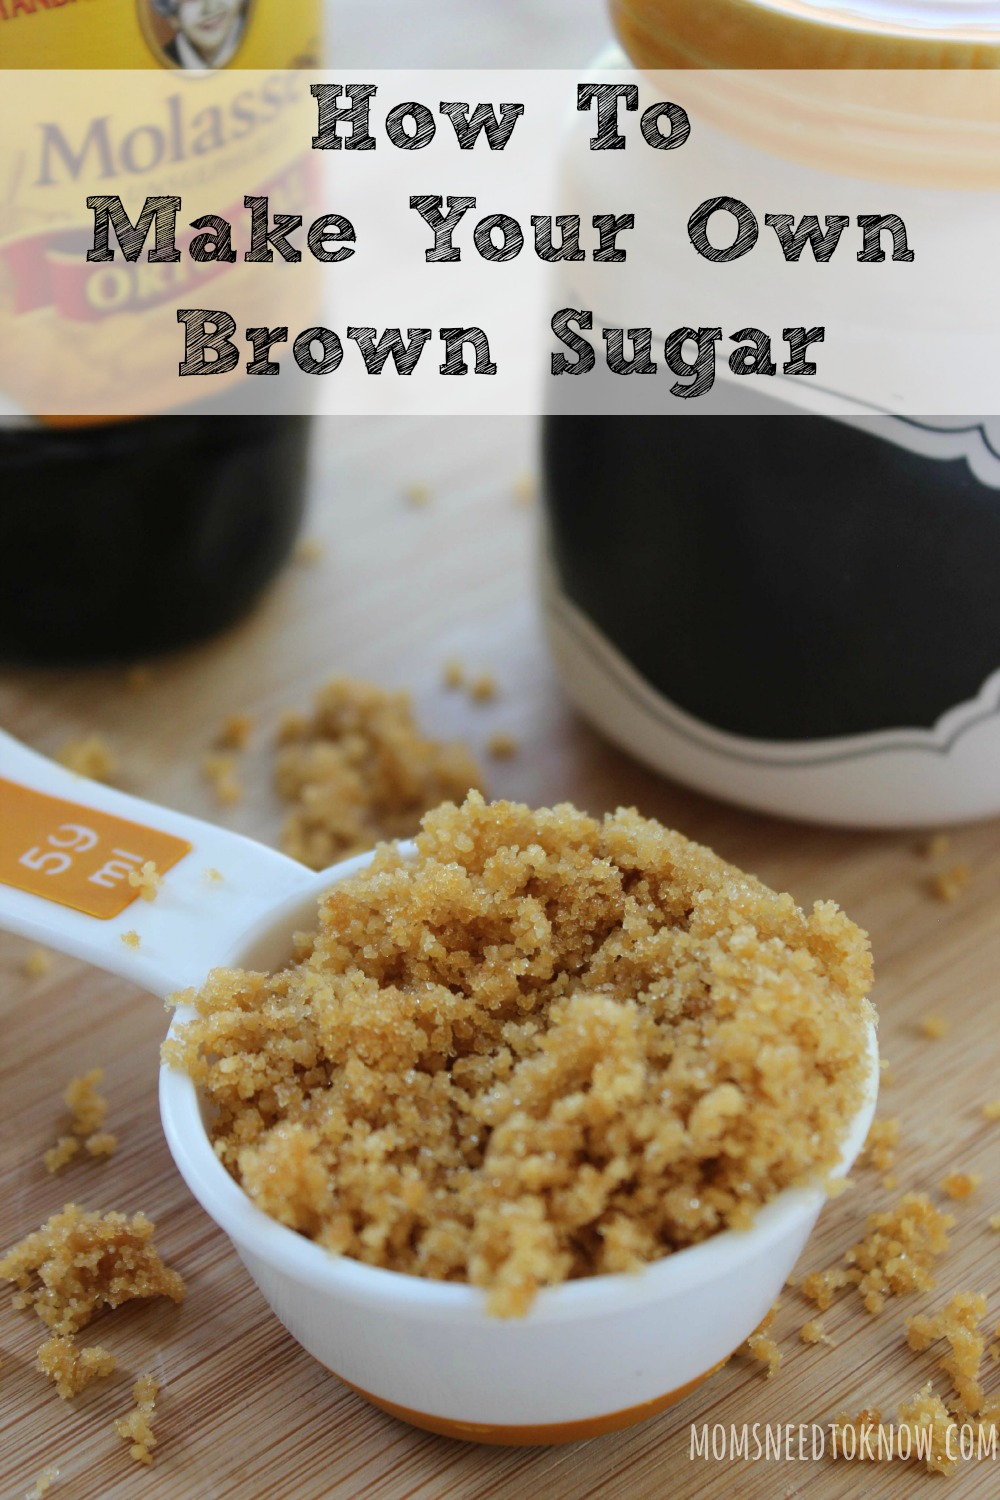 Making your own brown sugar is really quick and easy, will save space in your cabinets. Instead of keeping white sugar, light brown sugar AND dark brown sugar in your cabinets , you simply need some white sugar and some molasses!